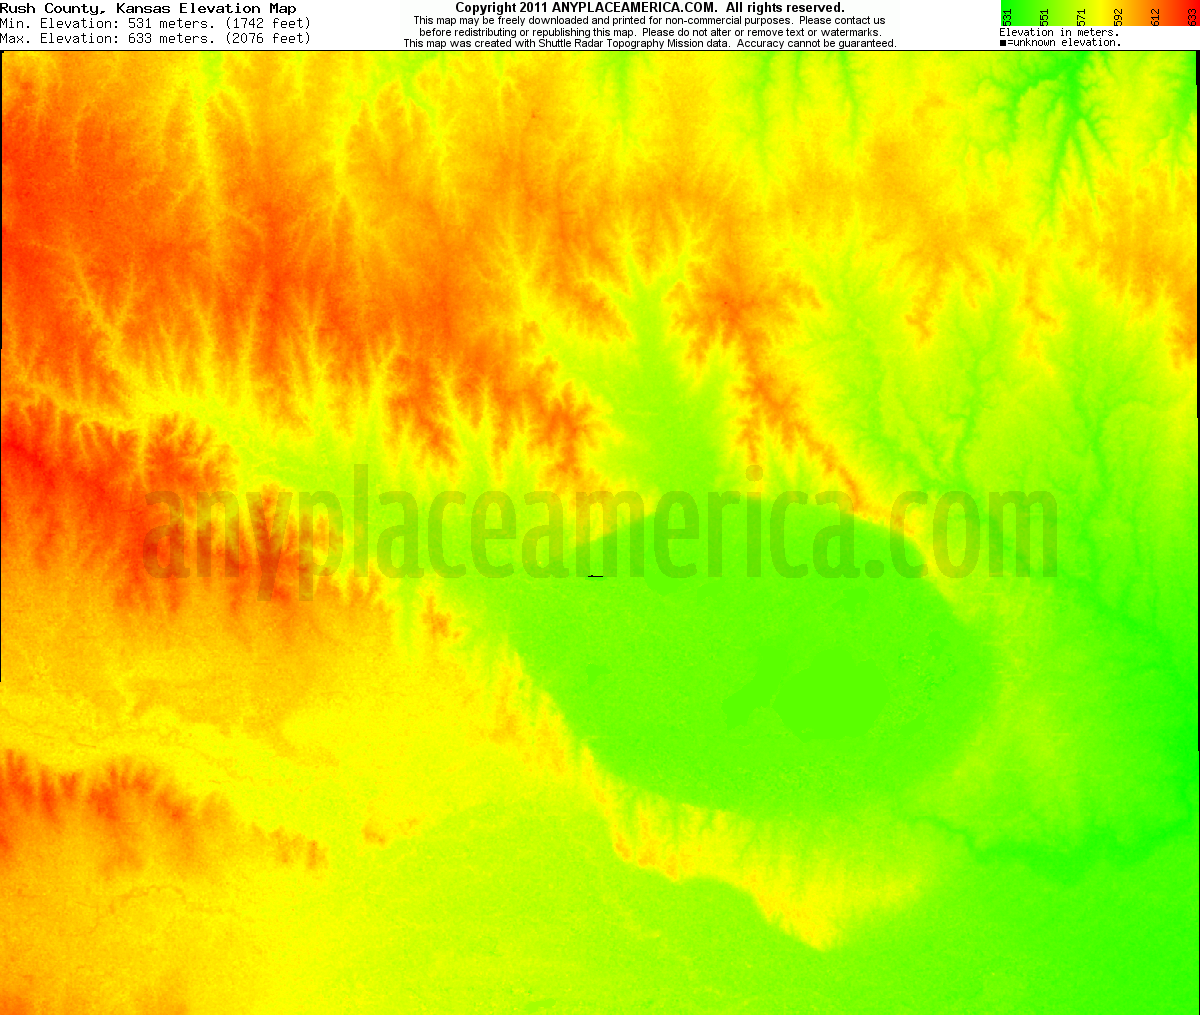 Kansas rush county liebenthal - Download Rush County Elevation Map